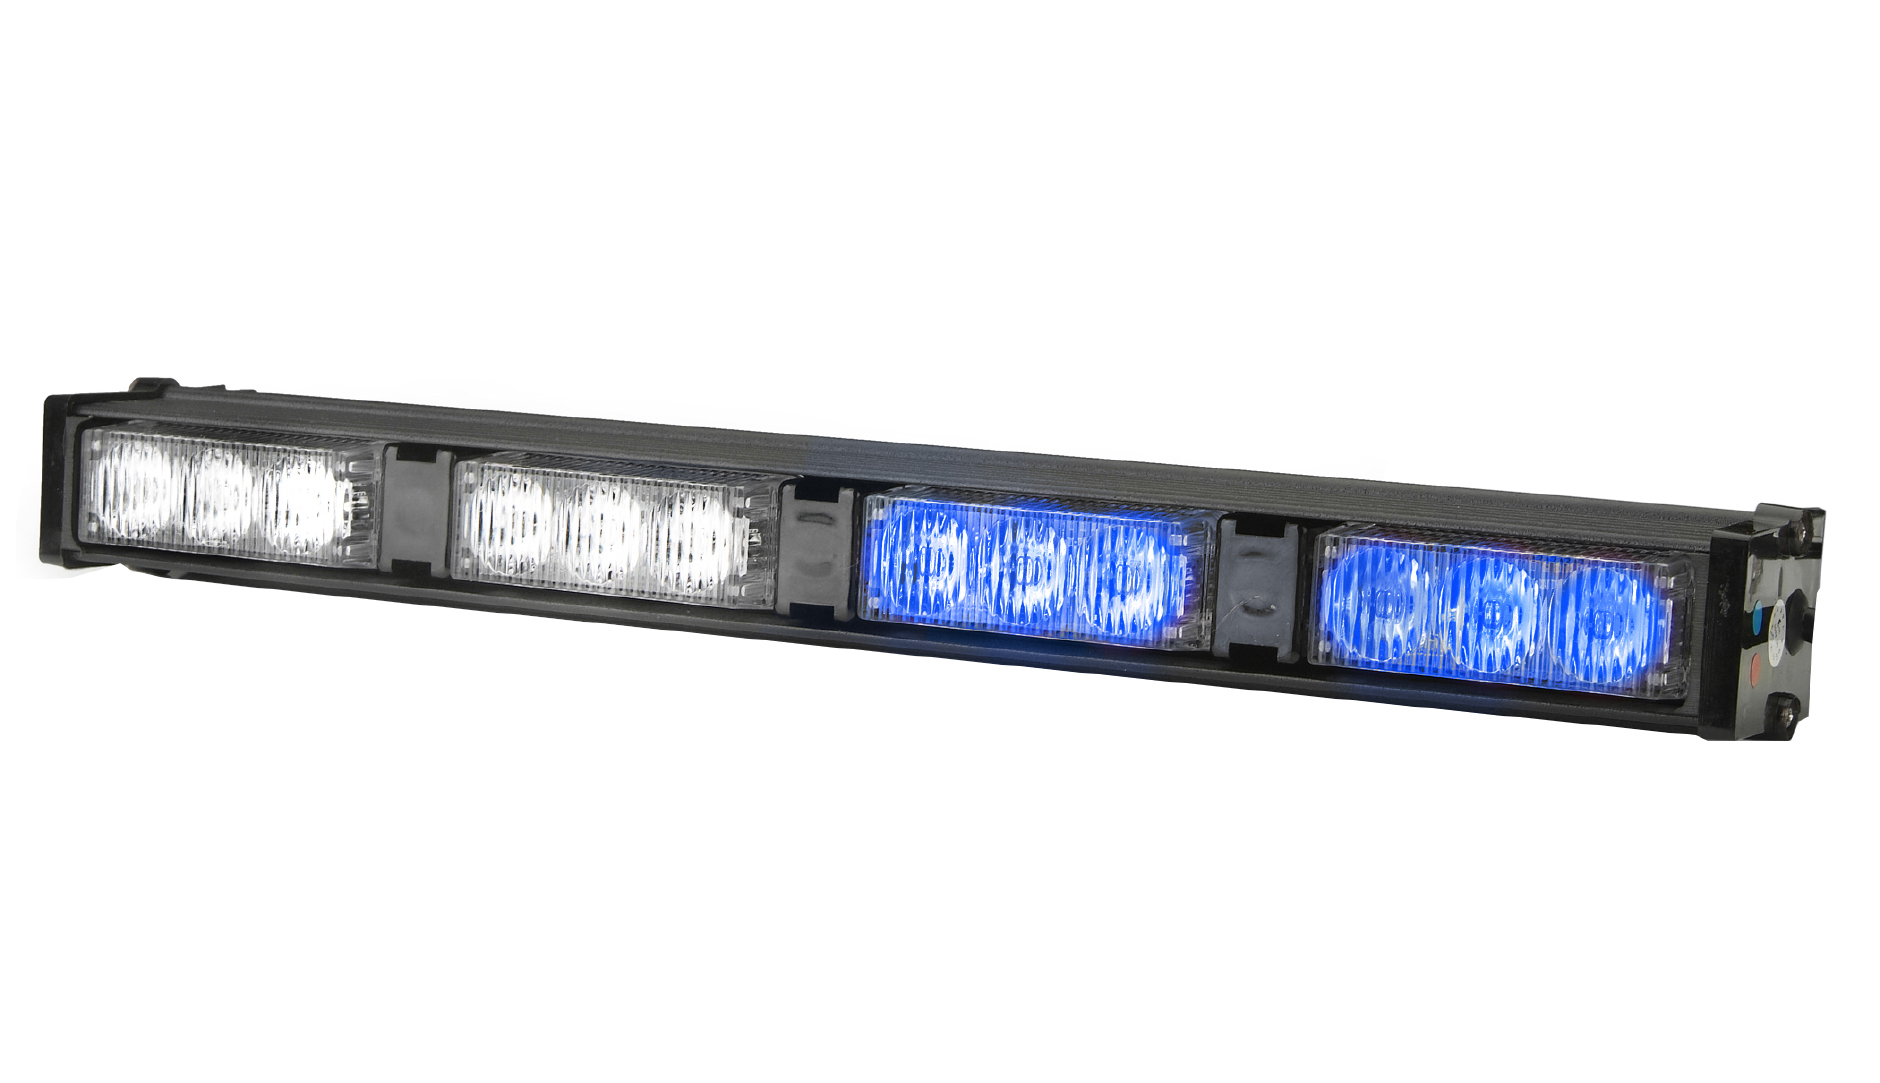 Emergency light bars for vehicles